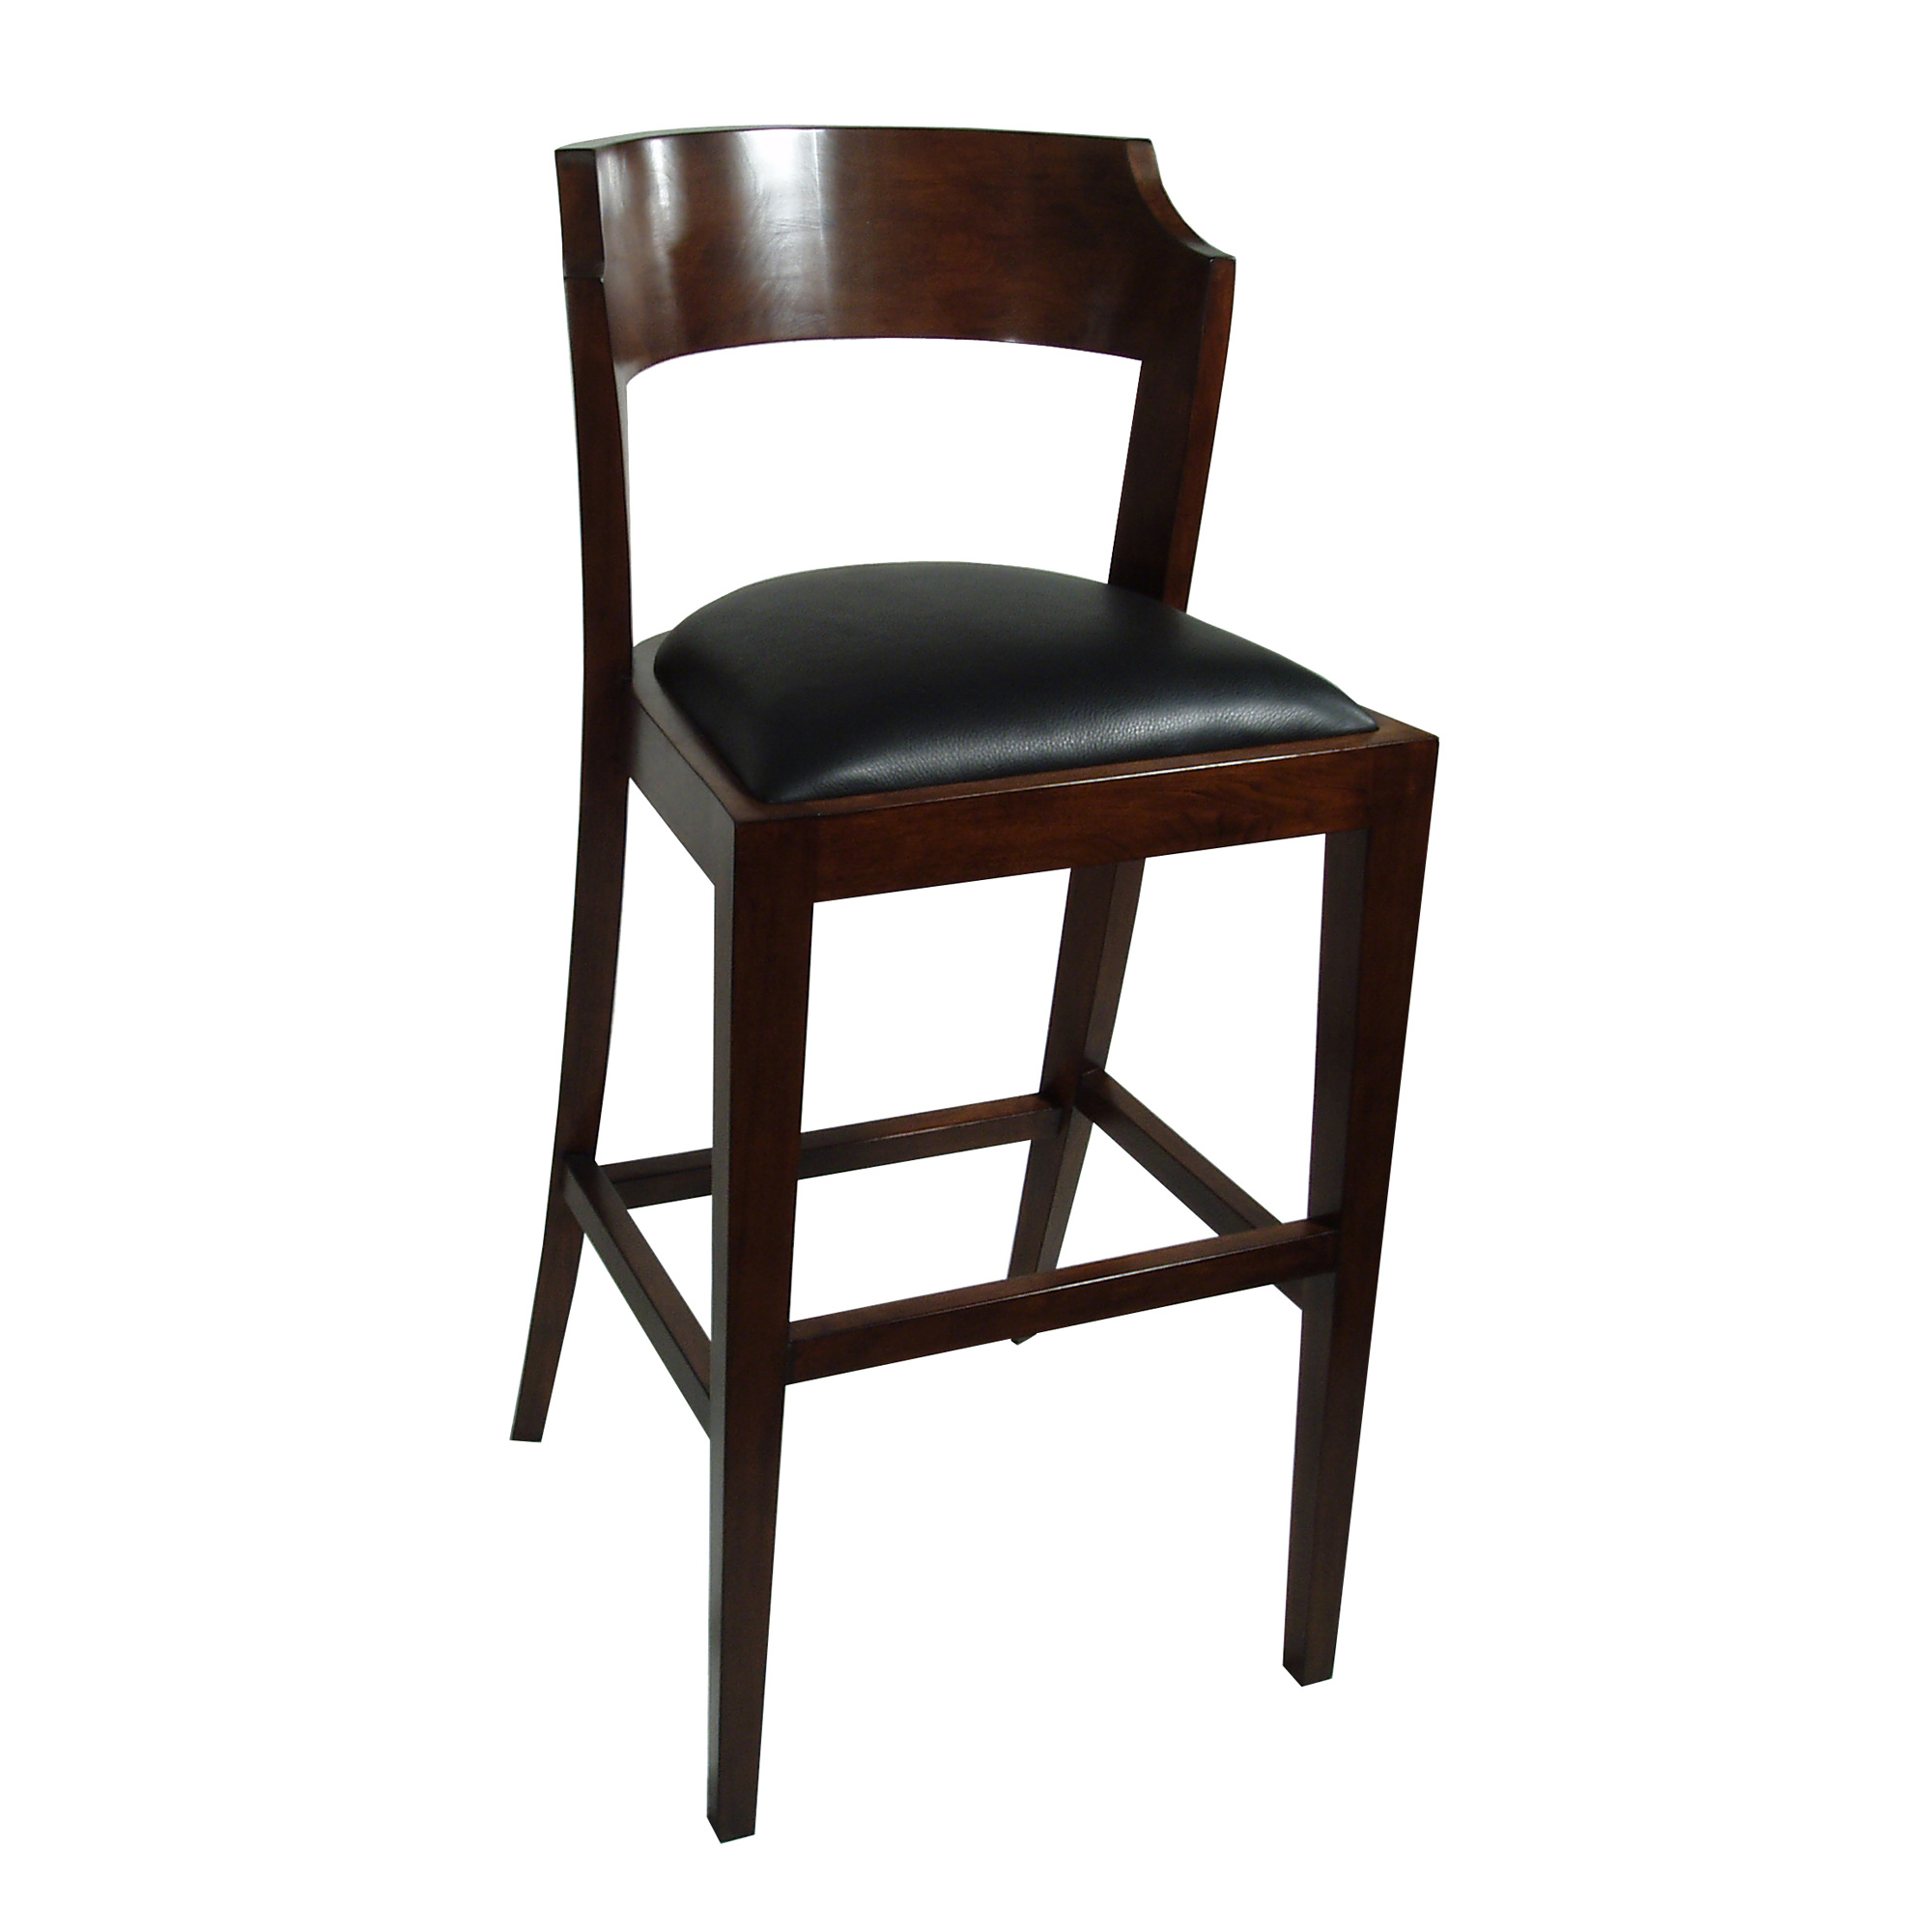 Maria Yee Montecito Notched Round Bar Chair